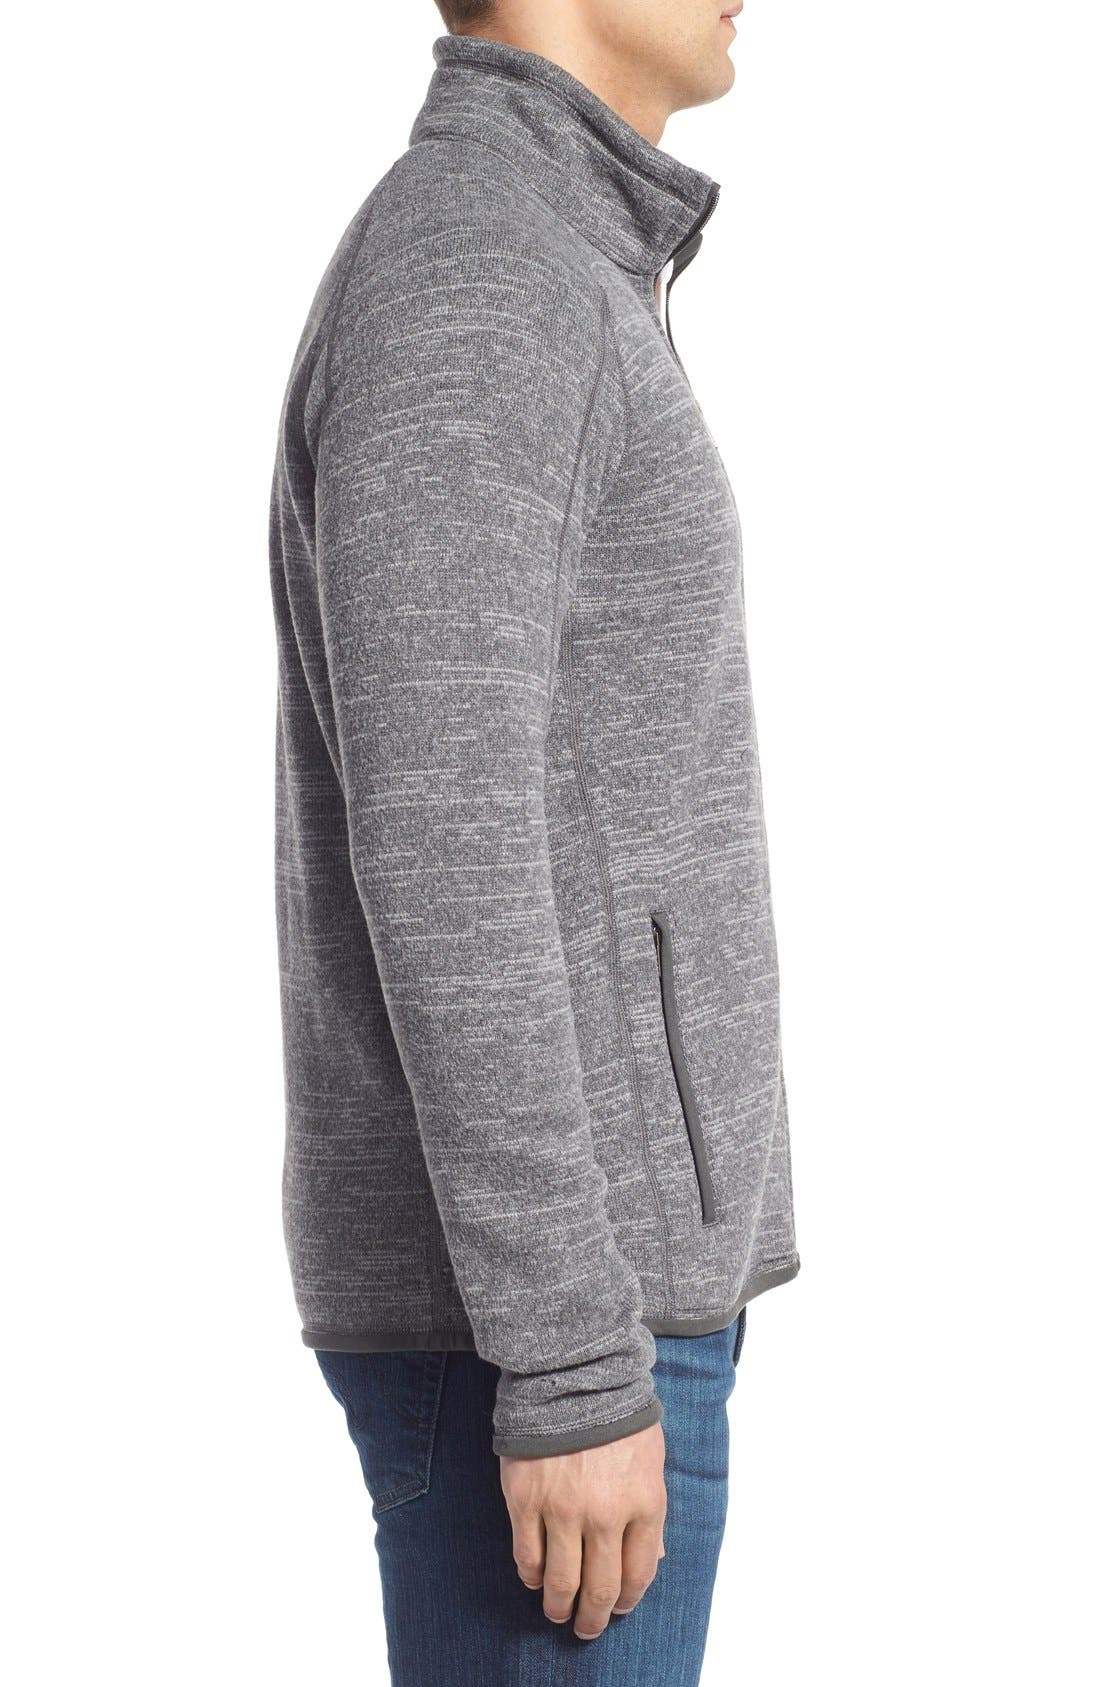 Better Sweater Zip Front Jacket,                             Alternate thumbnail 6, color,                             NICKEL/ FORGE GREY